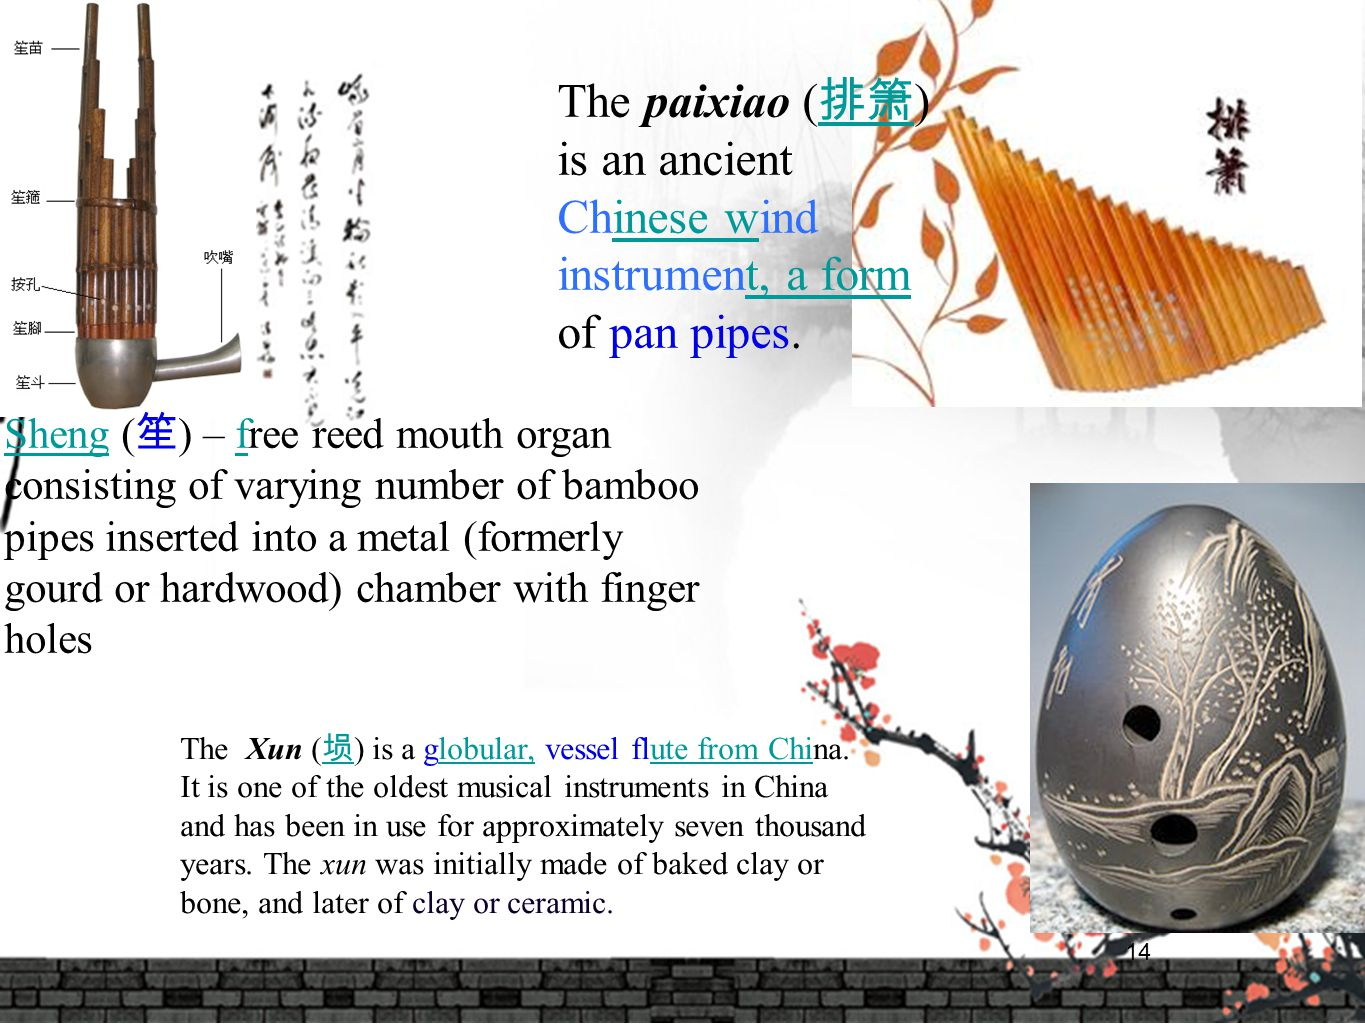 The paixiao (排箫) is an ancient Chinese wind instrument, a form of pan pipes.